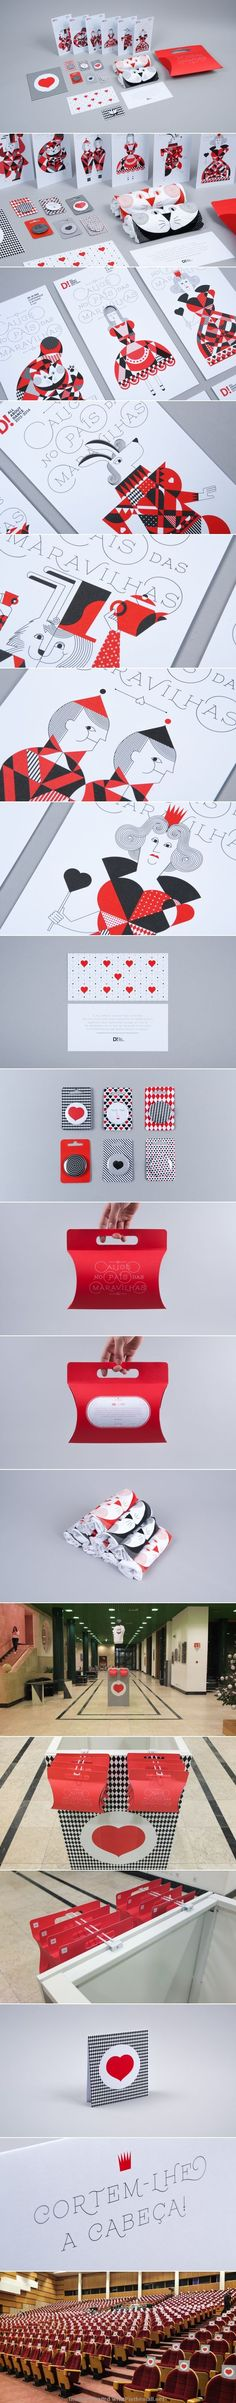 Alice in Wonderland all about dance #identity #packaging #branding curated by Packaging Diva PD created via https://www.behance.net/gallery/Alice-no-Pais-das-Maravilhas/14469157